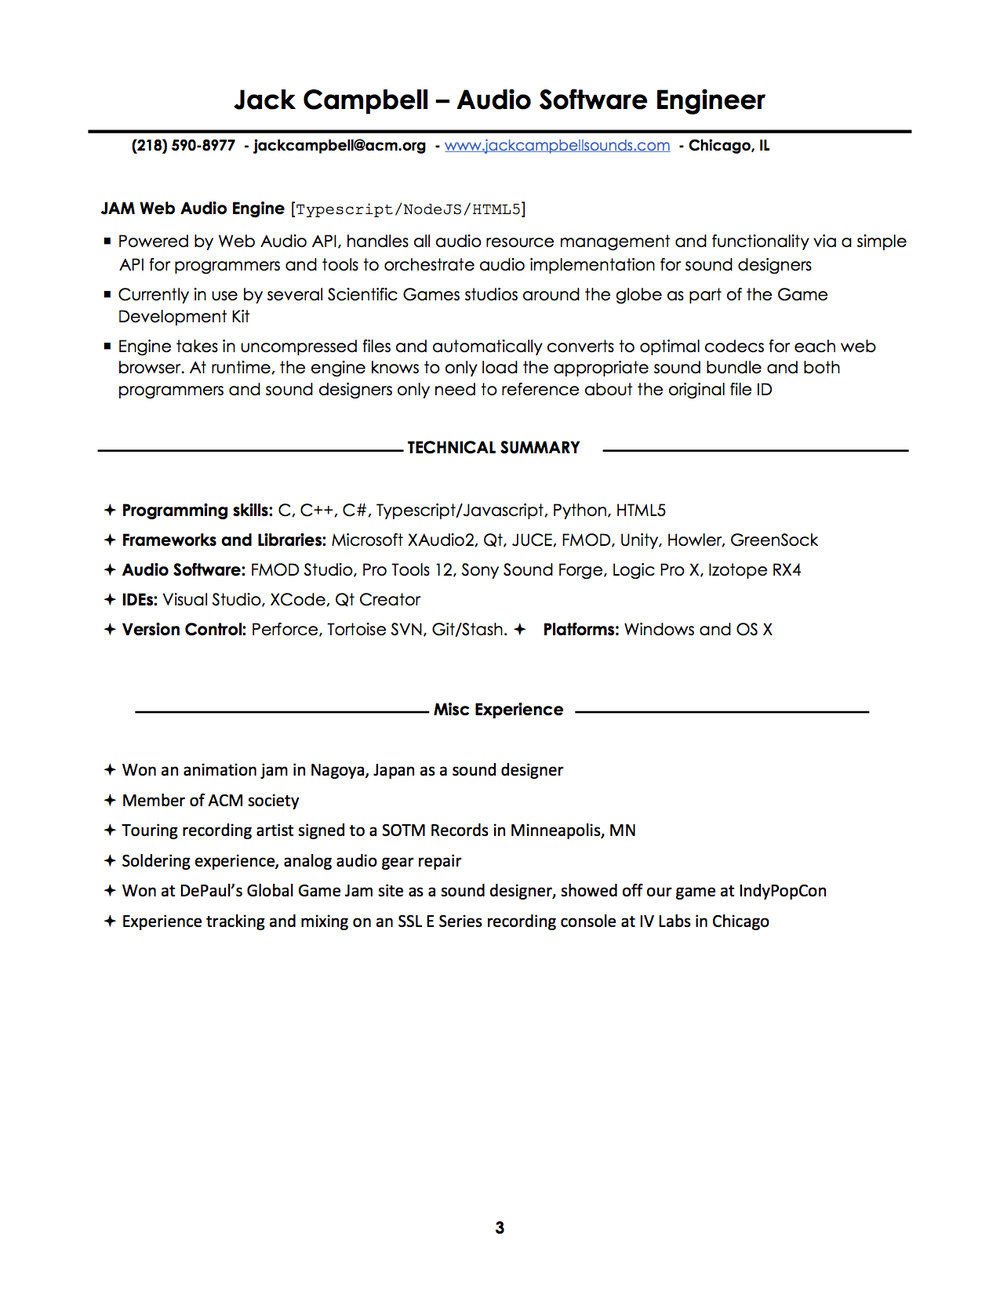 jcampbell_resume_audio_engineer (3).jpg